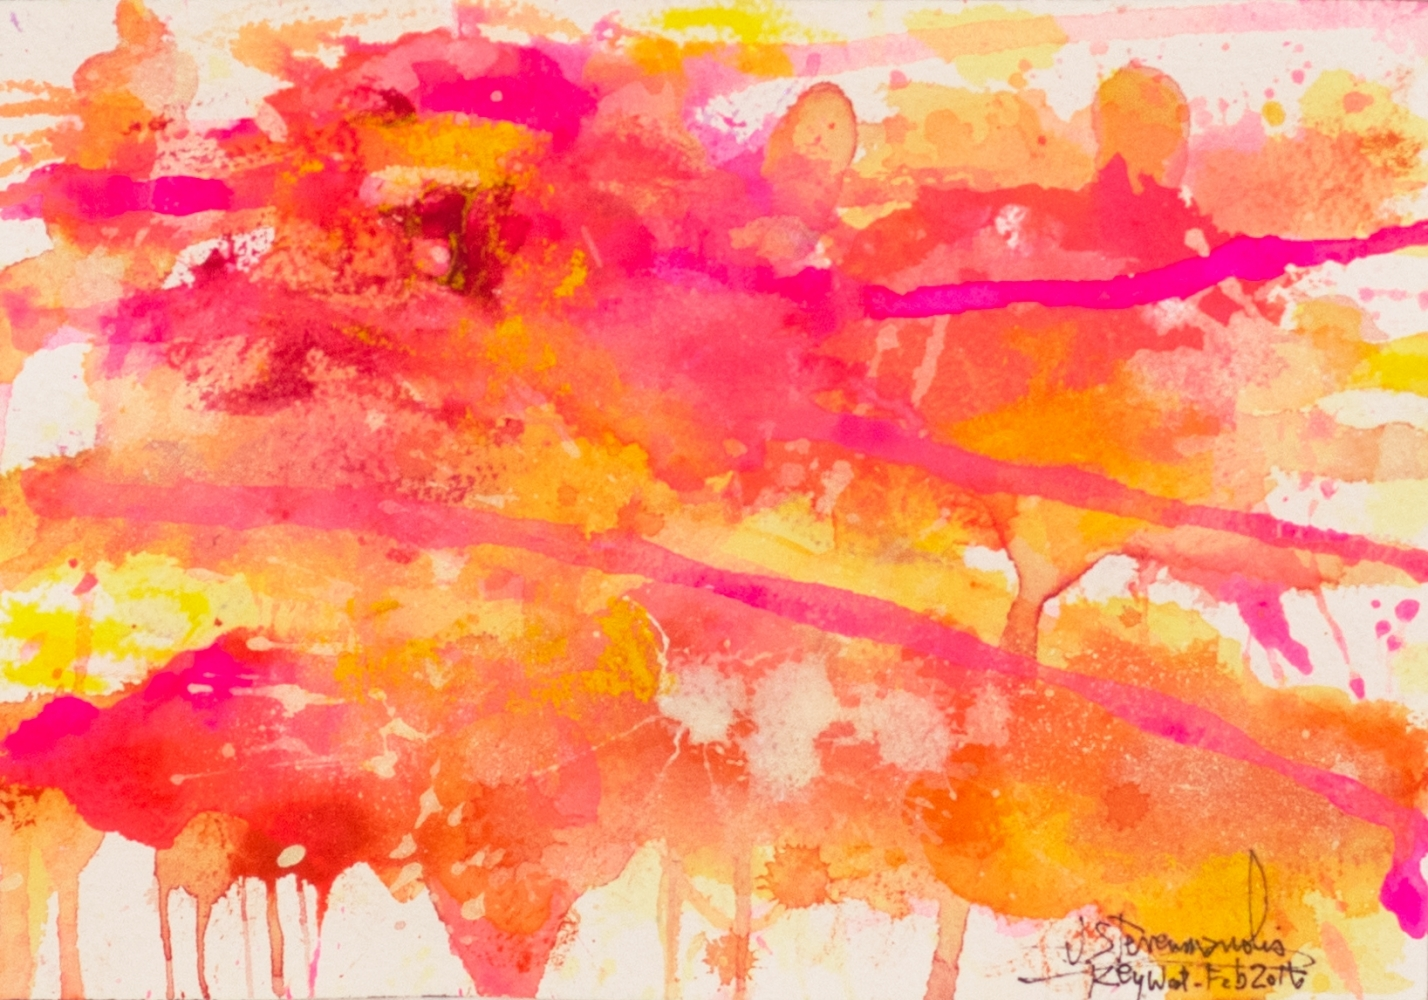 J. Steven Manolis, Flamingo 1832-2016 (Key West) 7.10.02, watercolor painting on paper, 7 x 10 inches, Pink and orange Abstract Art, Tropical Watercolor paintings for sale at Manolis Projects Art Gallery, Miami, Fl